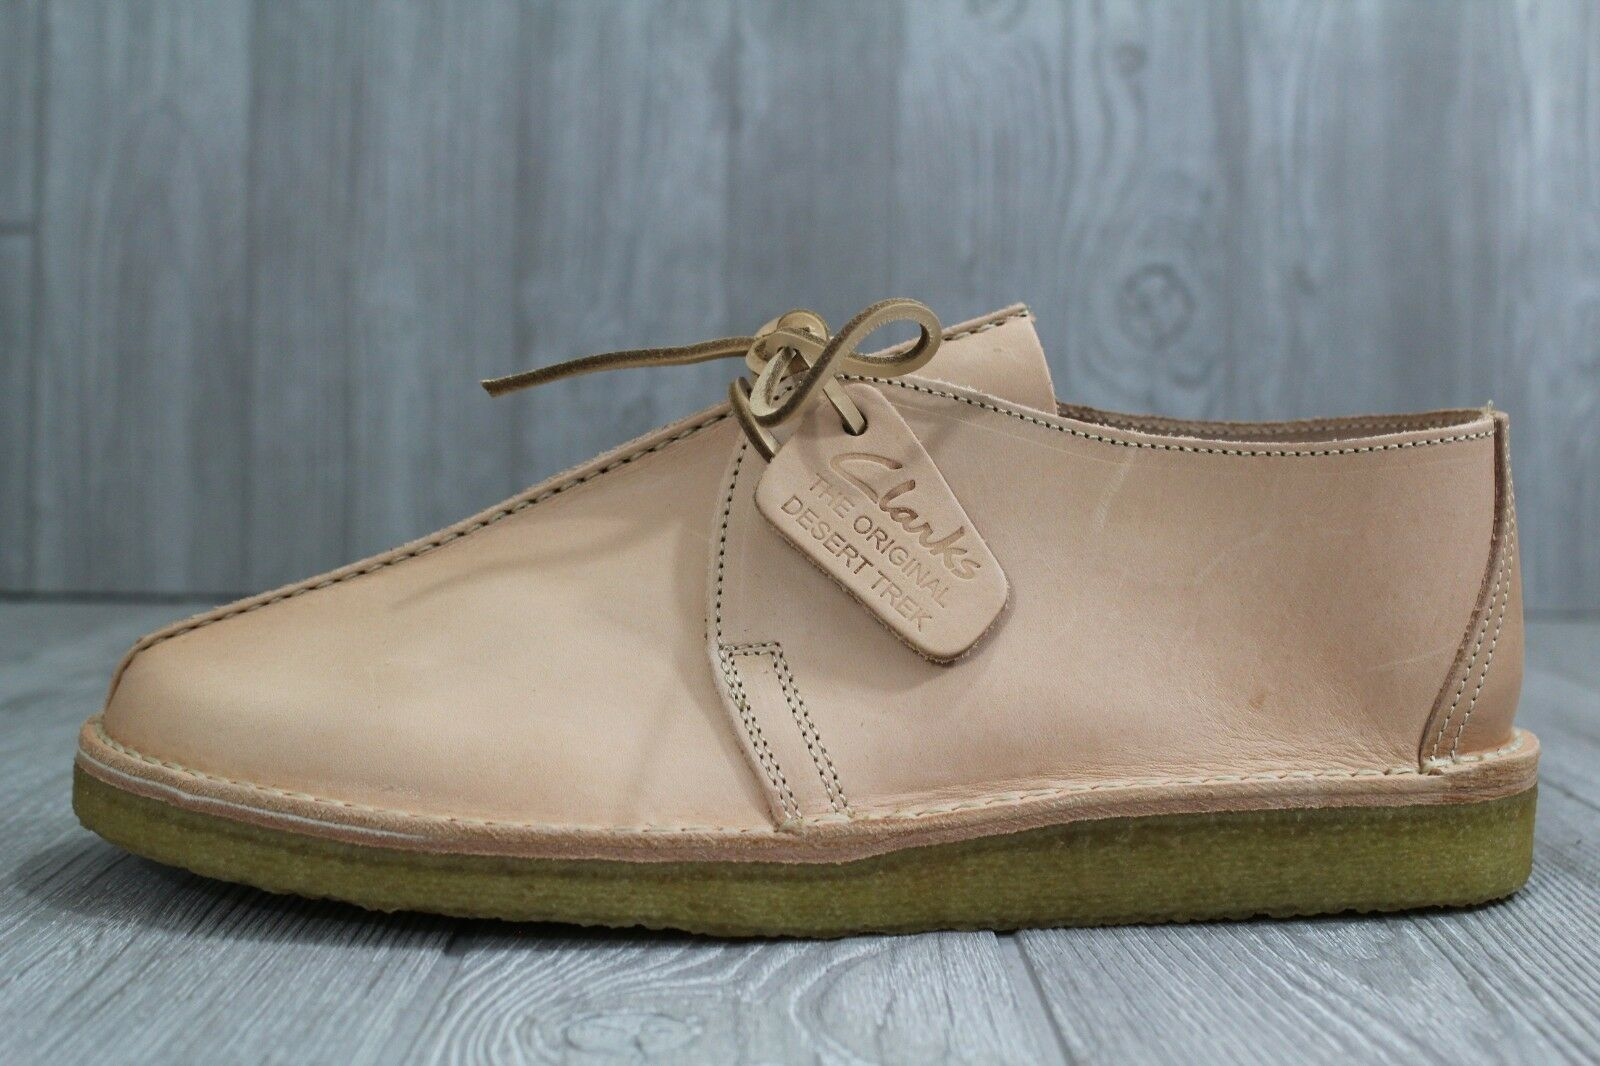 32 RARE Clarks Originals Desert Trek Natural Tan Italian Leather shoes Sz 11.5